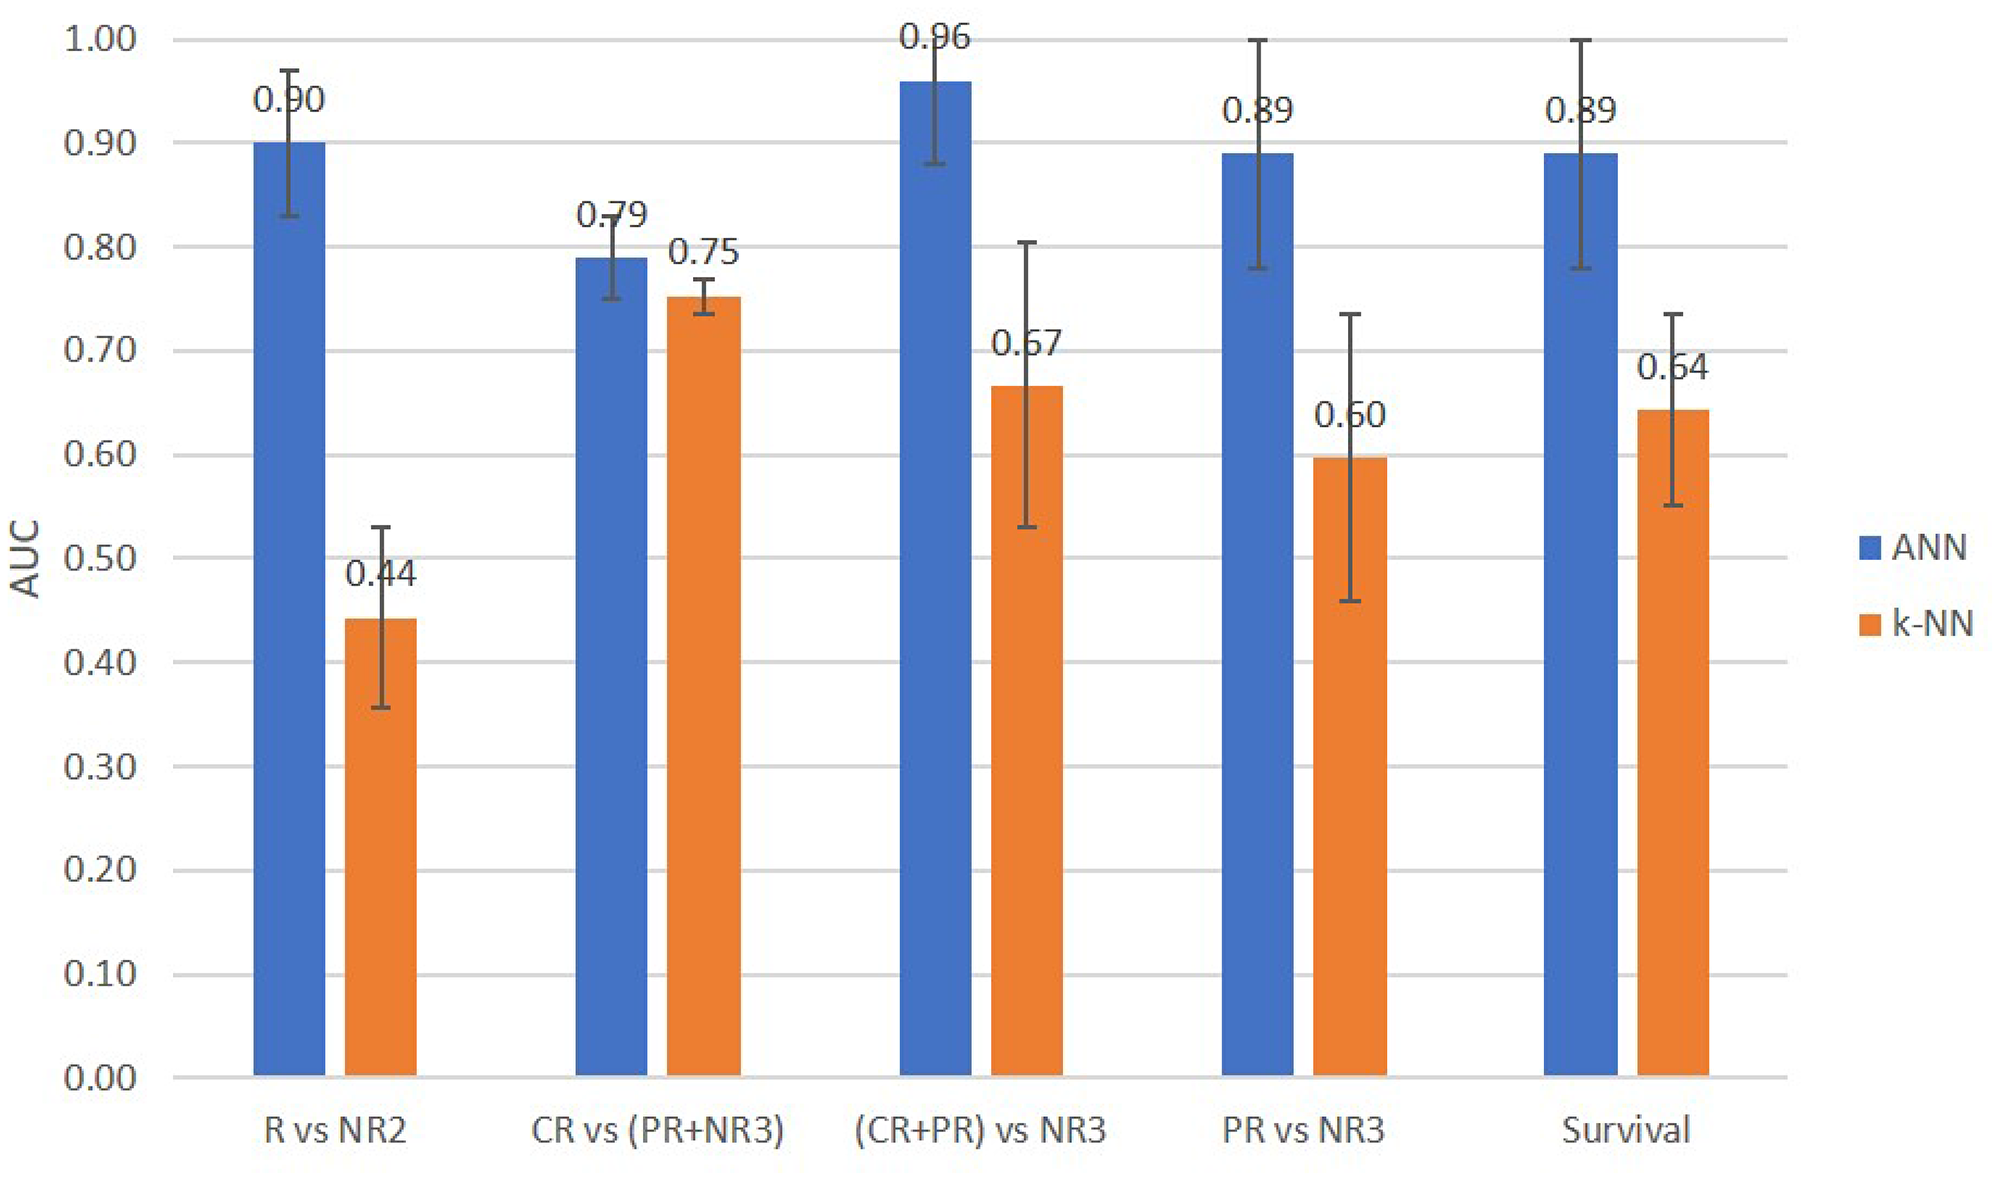 Comparison of prediction performance AUCs of the ANN and KNN classifiers for two-class and three-class response and survival prediction tasks.